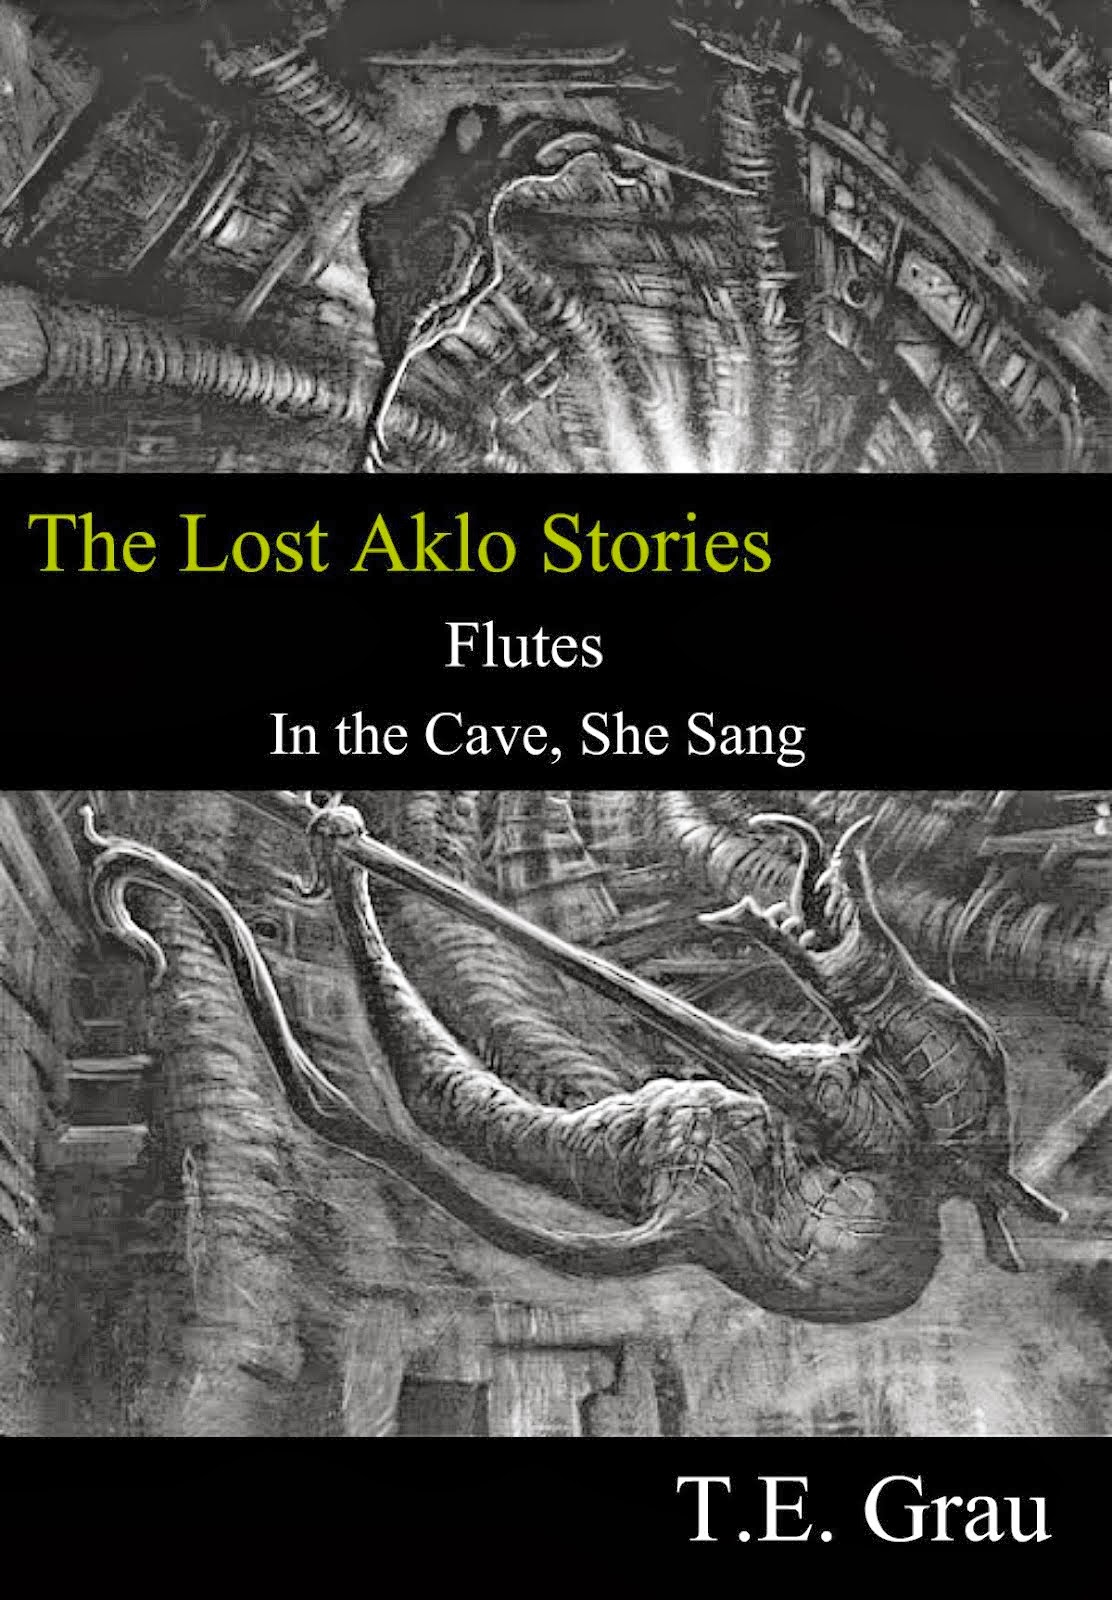 THE LOST AKLO STORIES